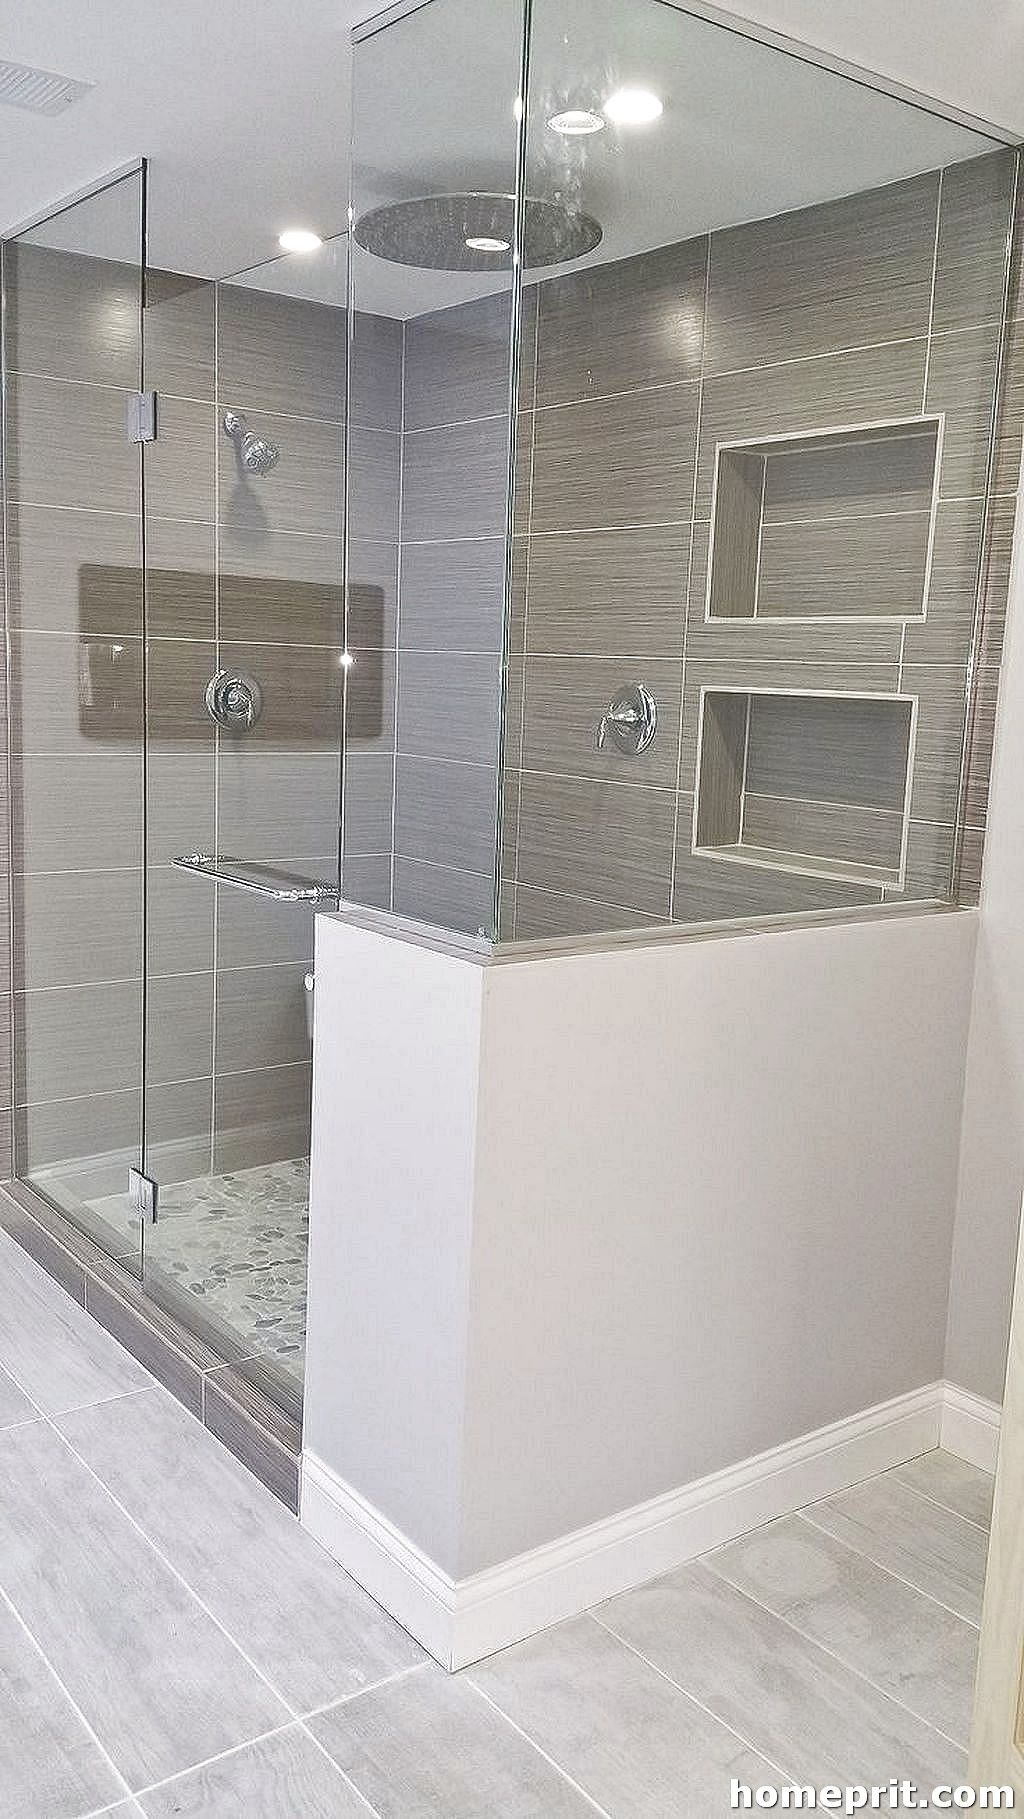 20 Fabulous Shower Bathroom Ideas That Steal Your Focus Bathroom Remodel Master Modern Master Bathroom Bathrooms Remodel